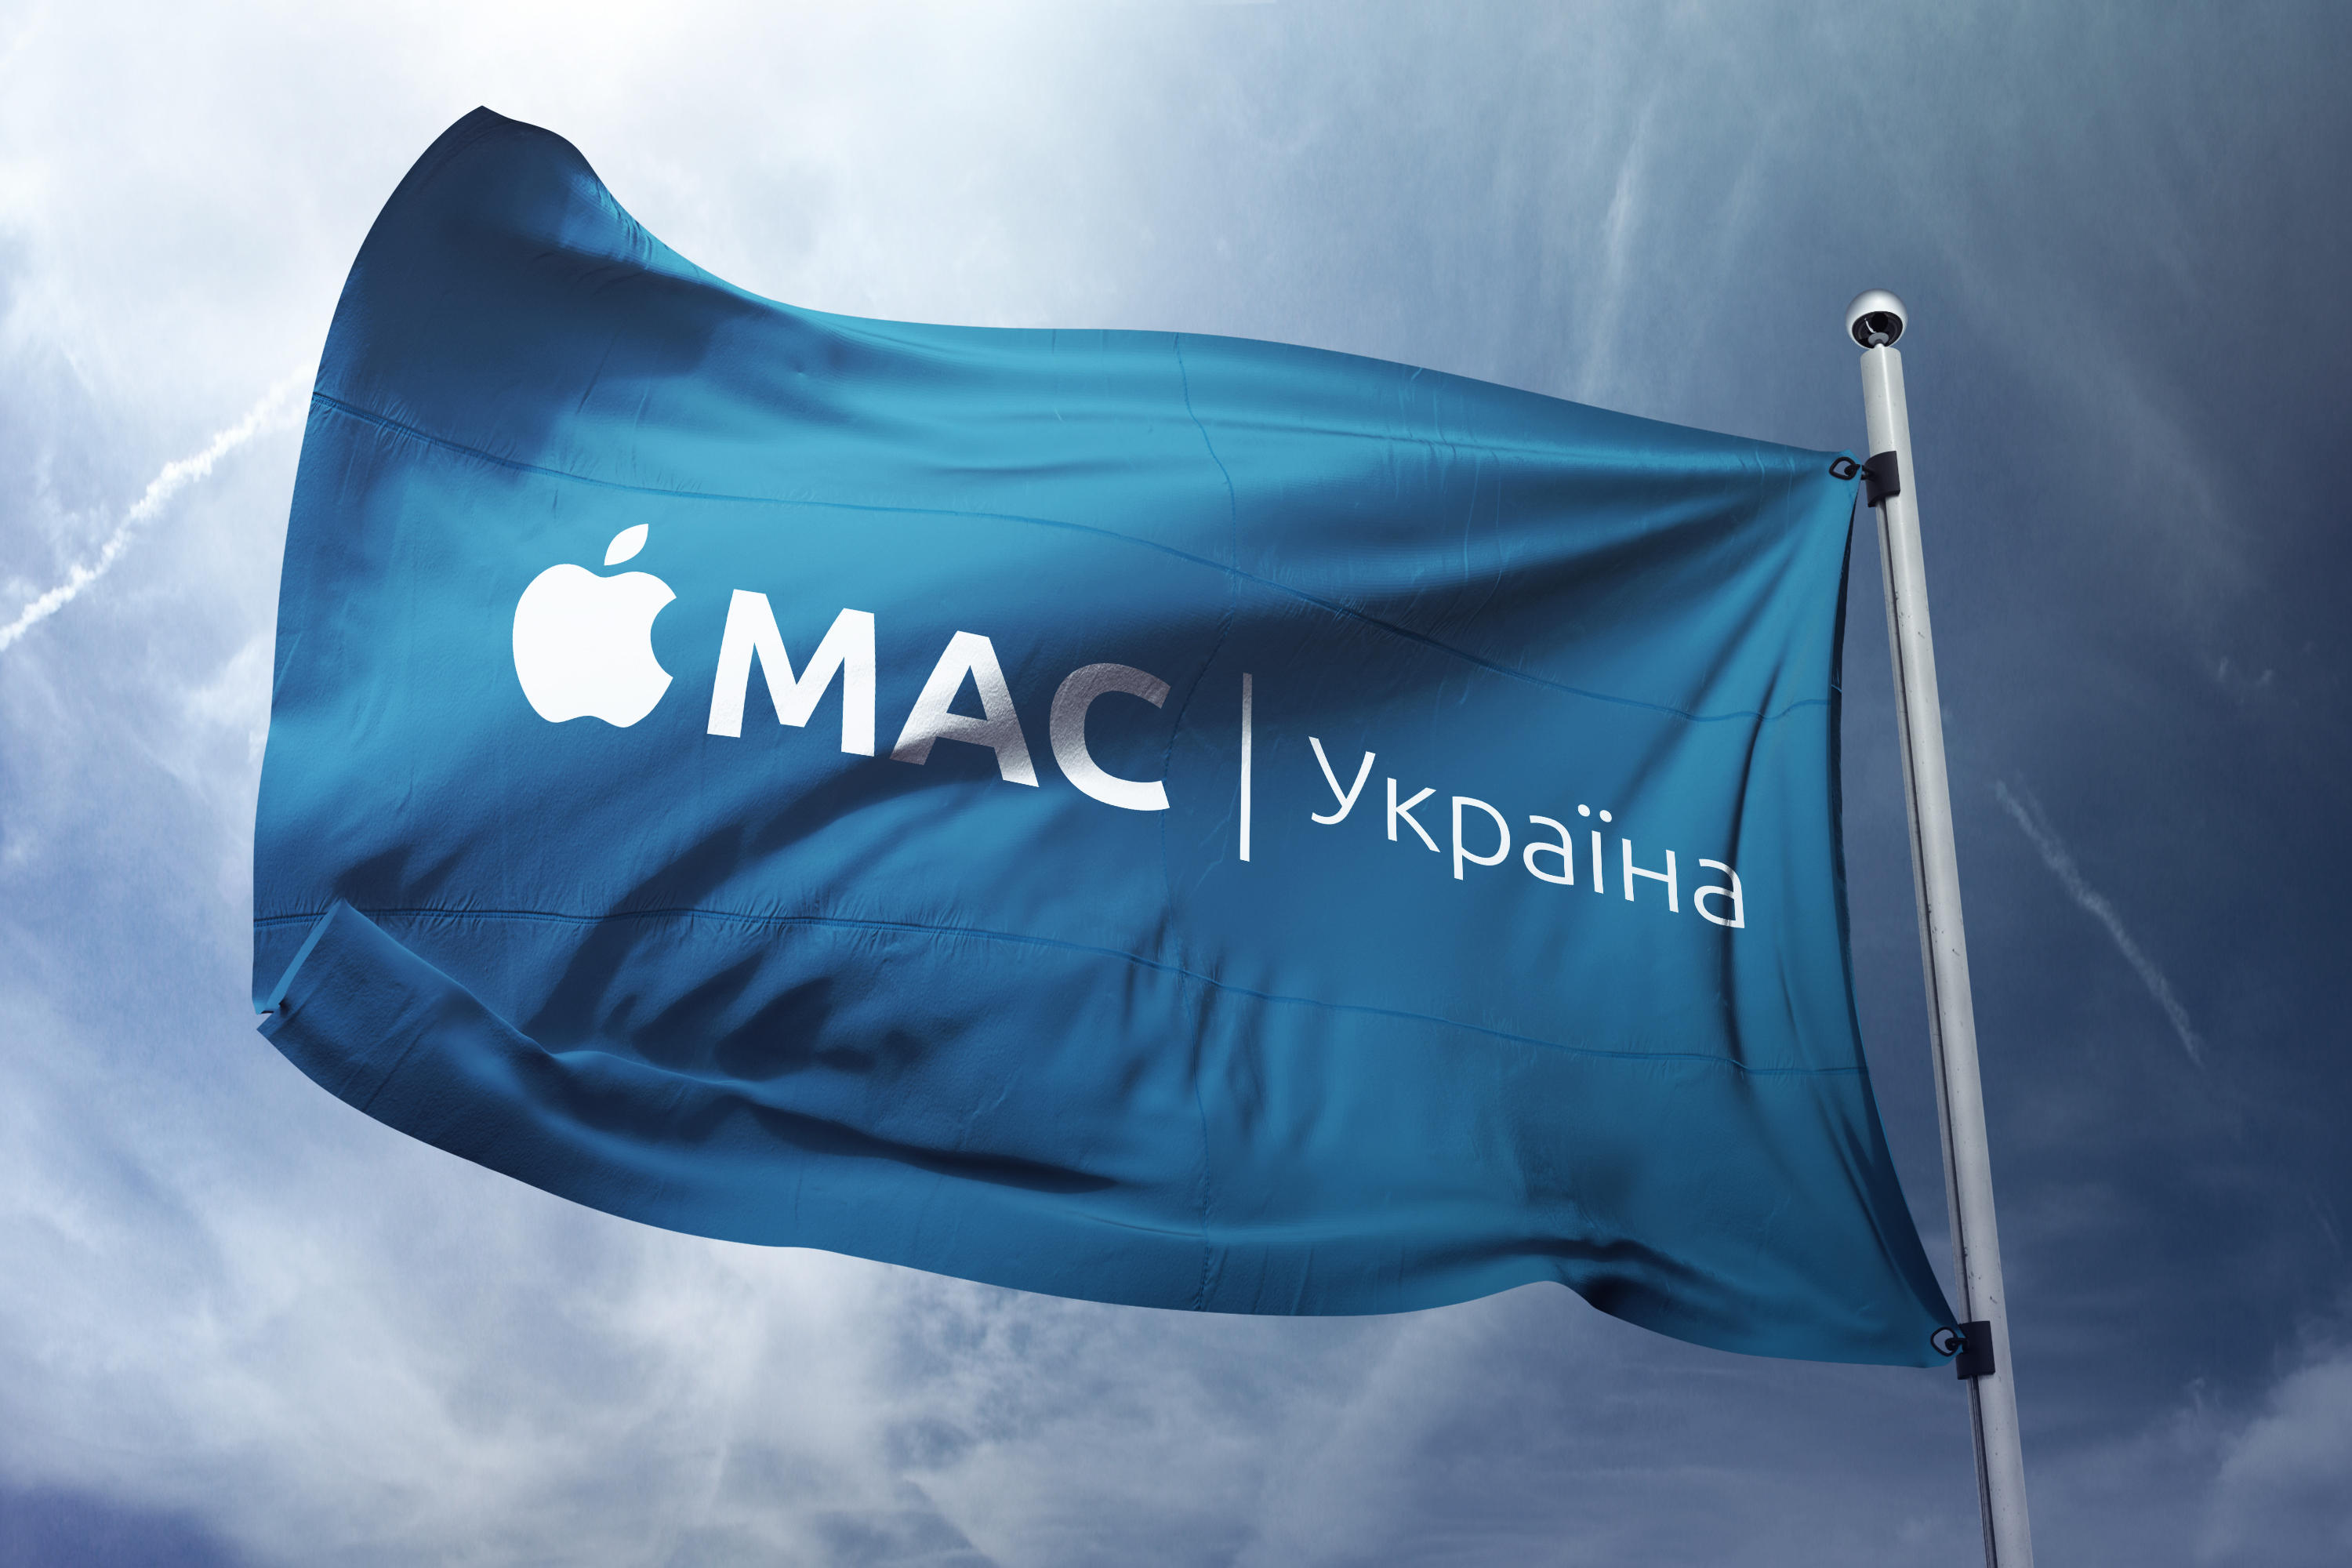 Apple Mac Ukraine